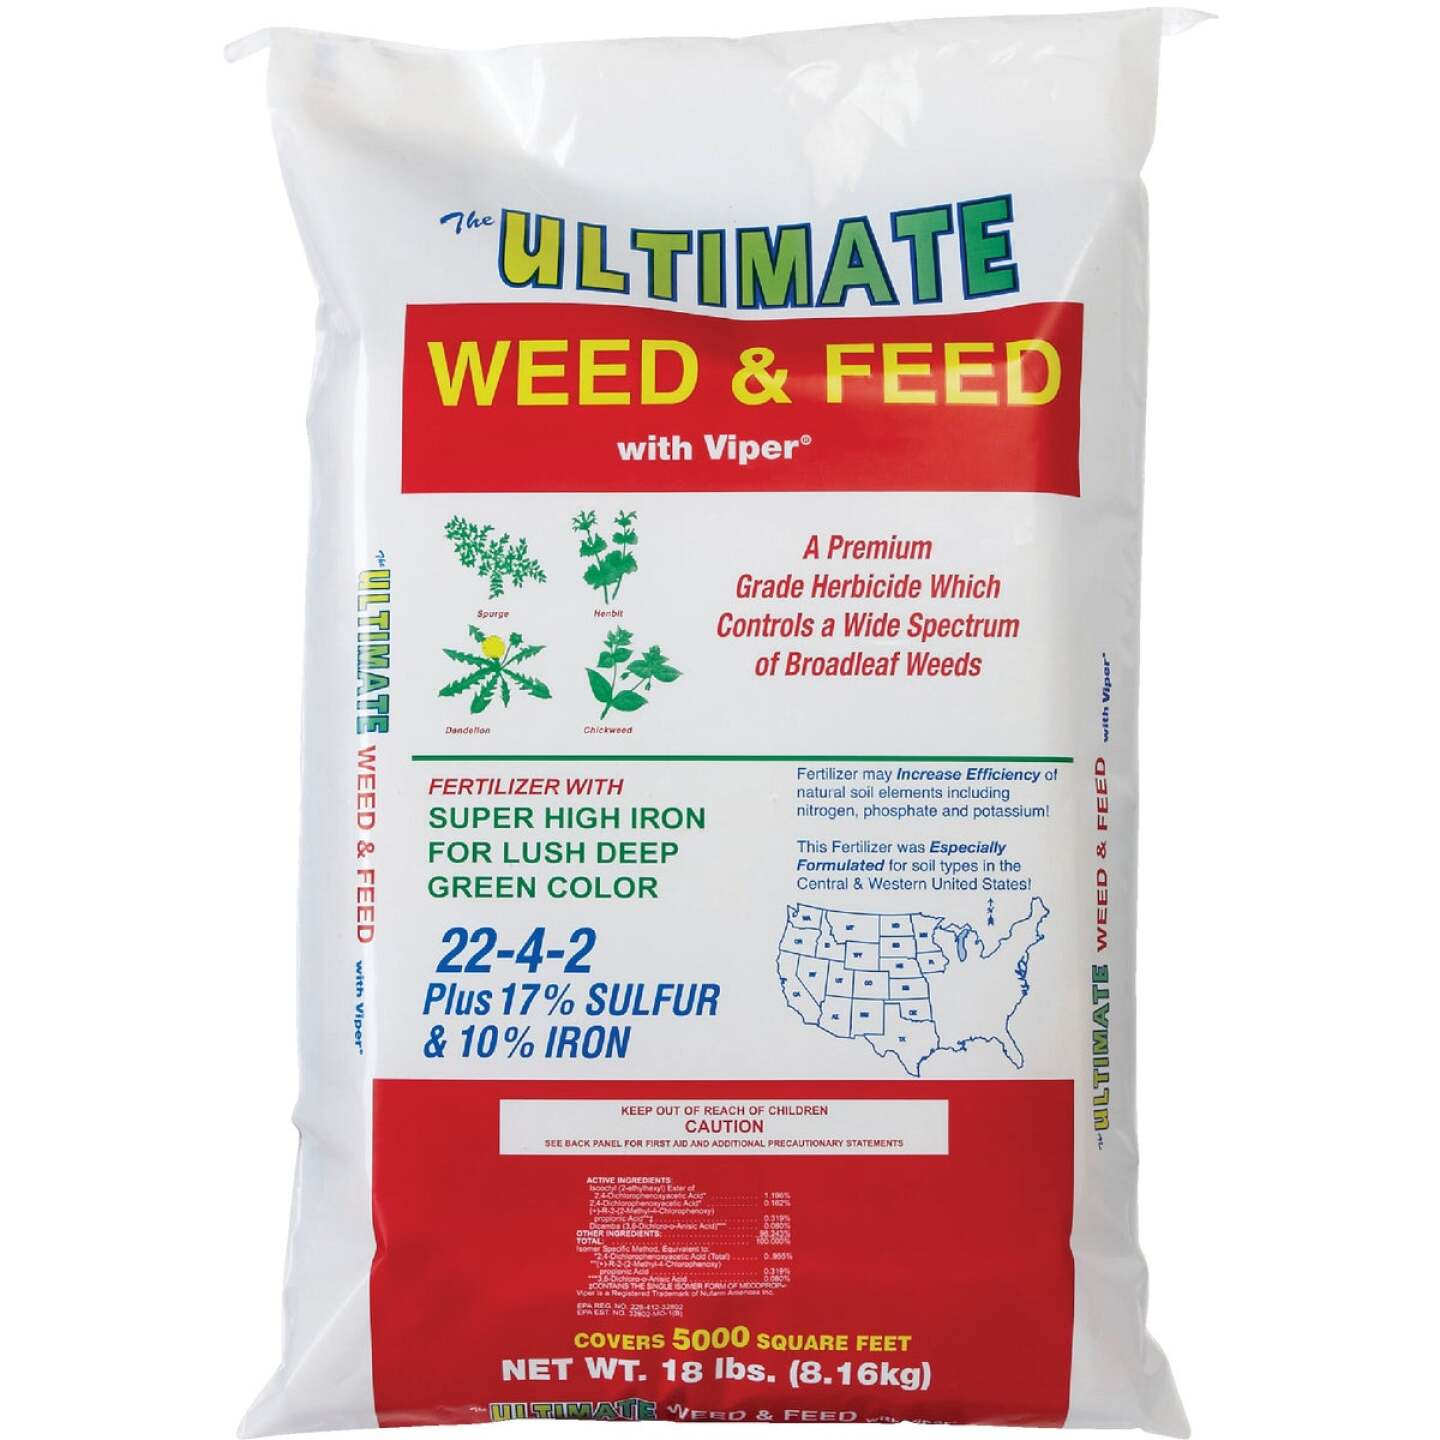 Ultimate Weed & Feed 18 Lb. 5000 Sq. Ft. 22-4-2 Lawn Fertilizer with Weed Killer Image 2